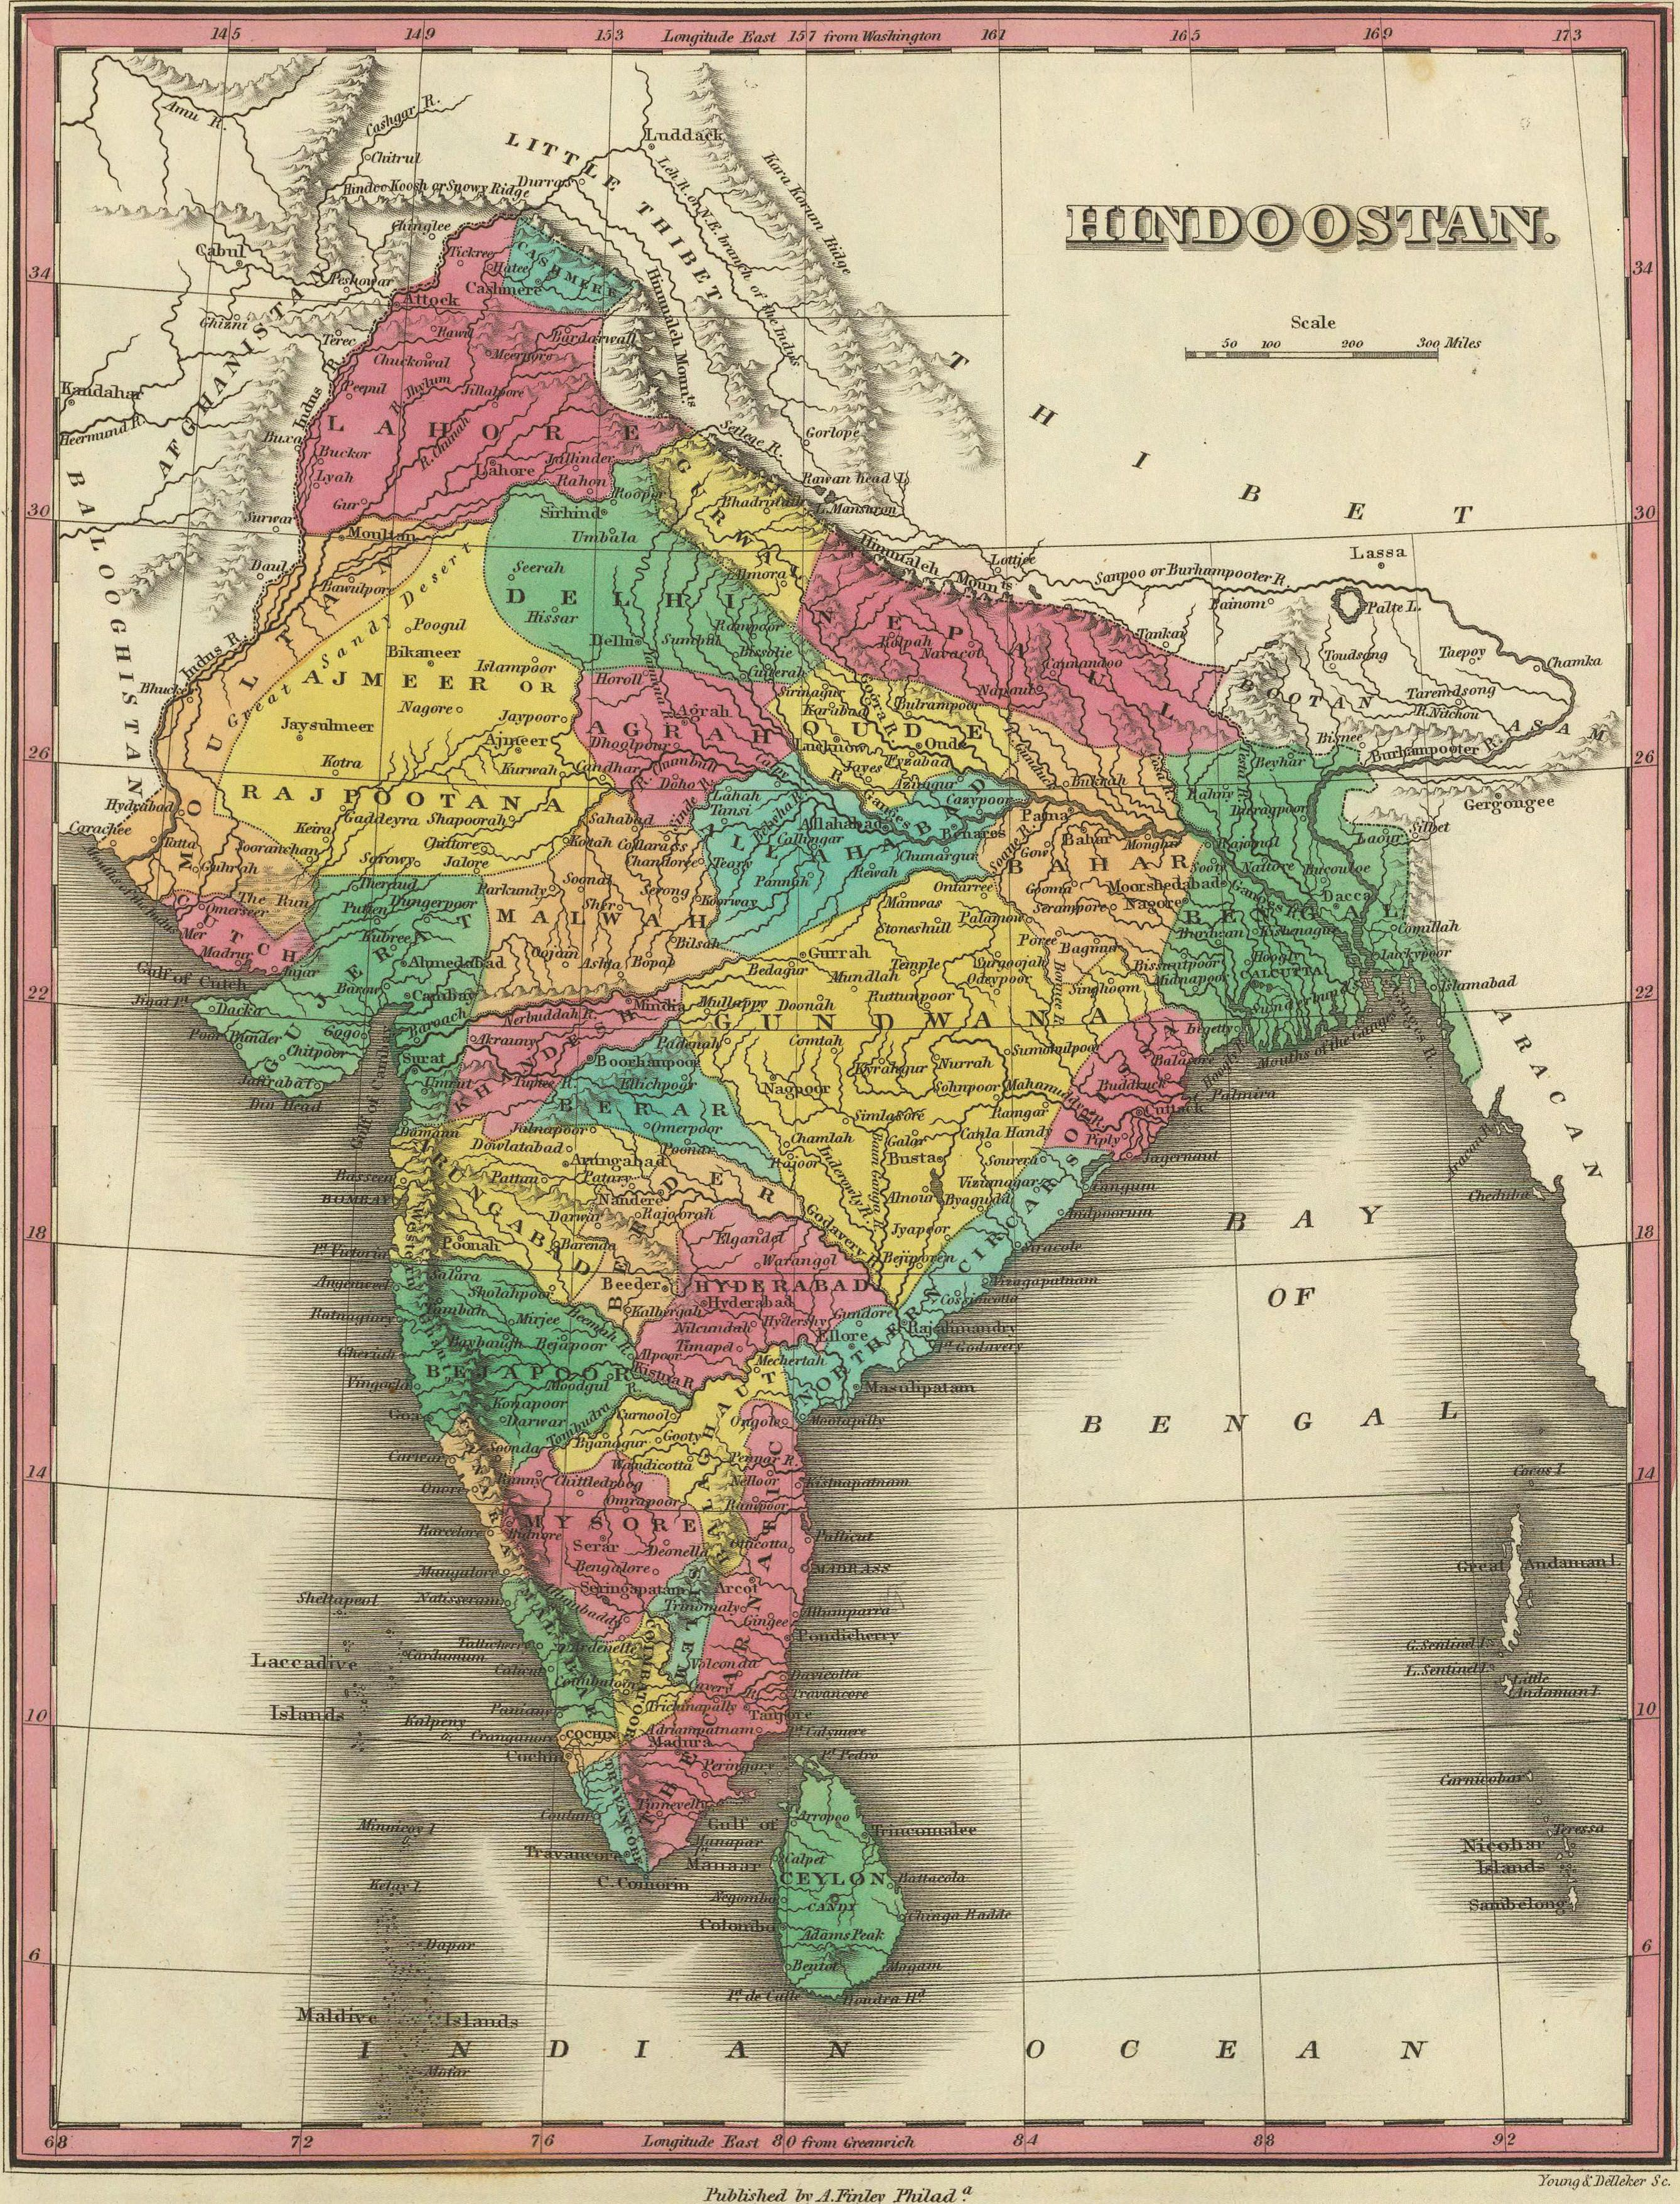 Pin by Kulveer Singh on Old maps of India | Map, India map ...